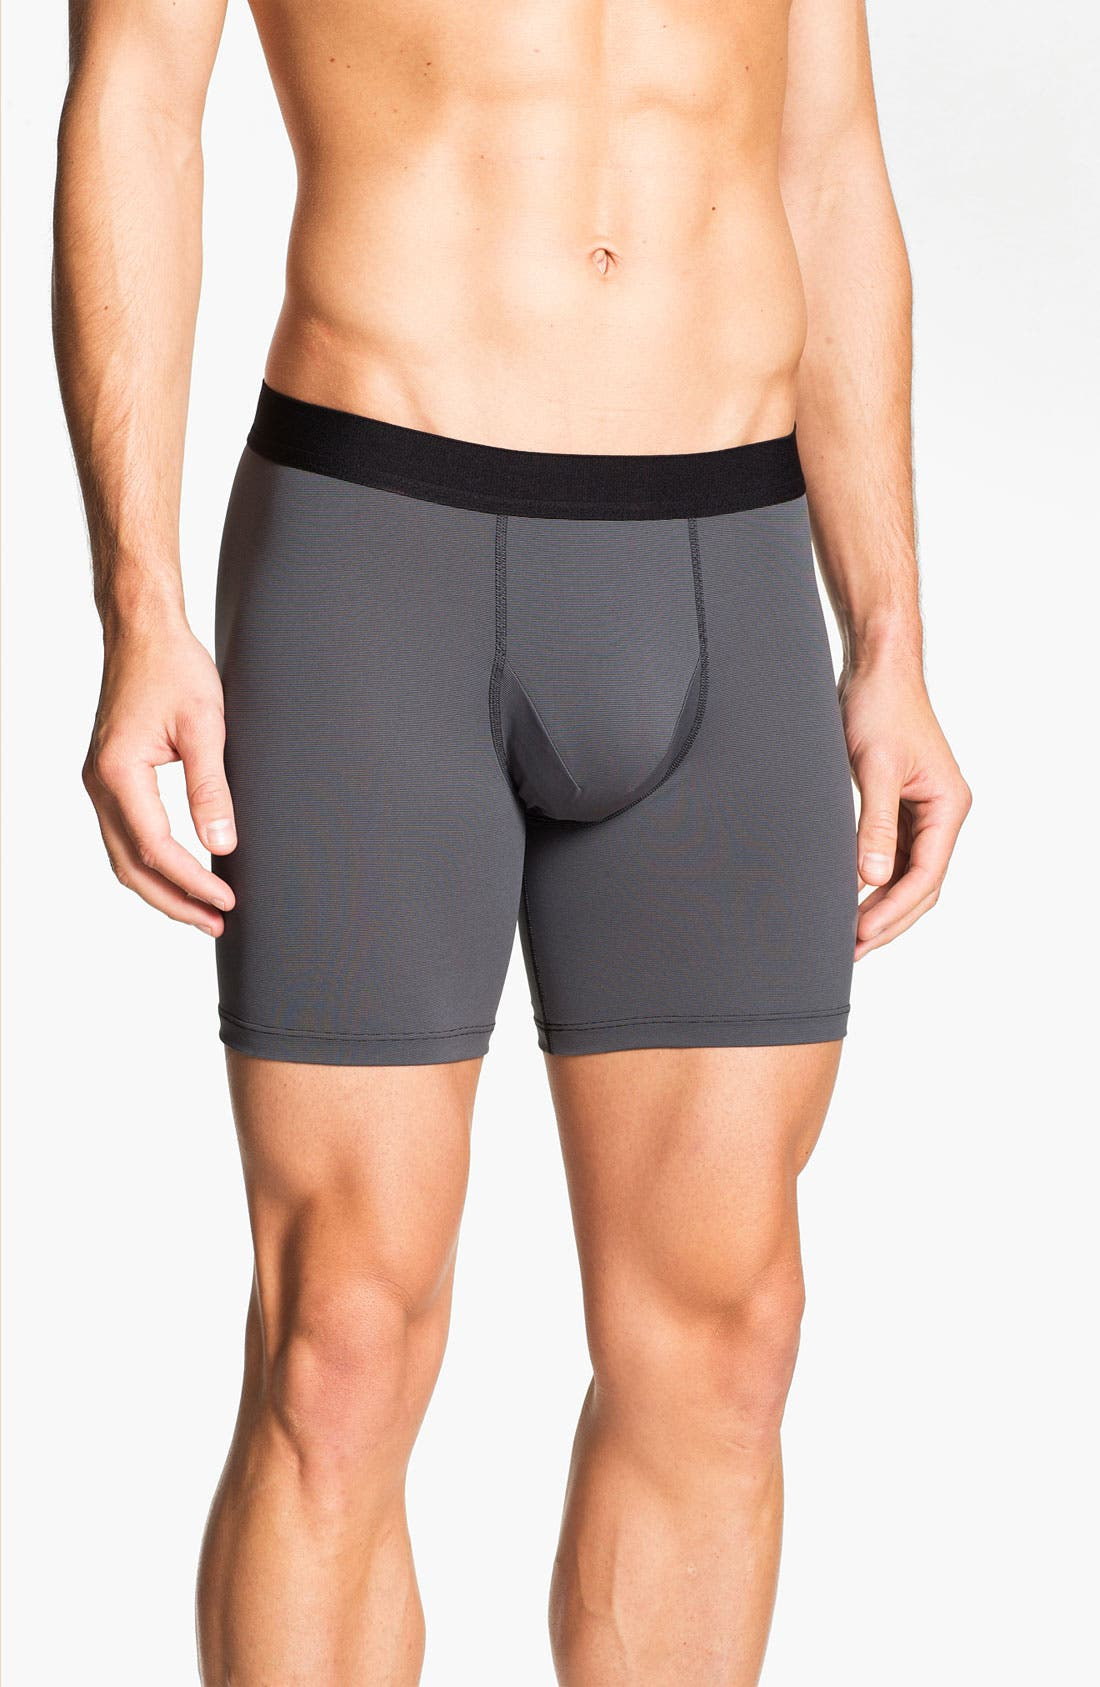 Alternate Image 1 Selected - Arc'teryx 'Phase SL' Boxer Briefs (Online Exclusive)